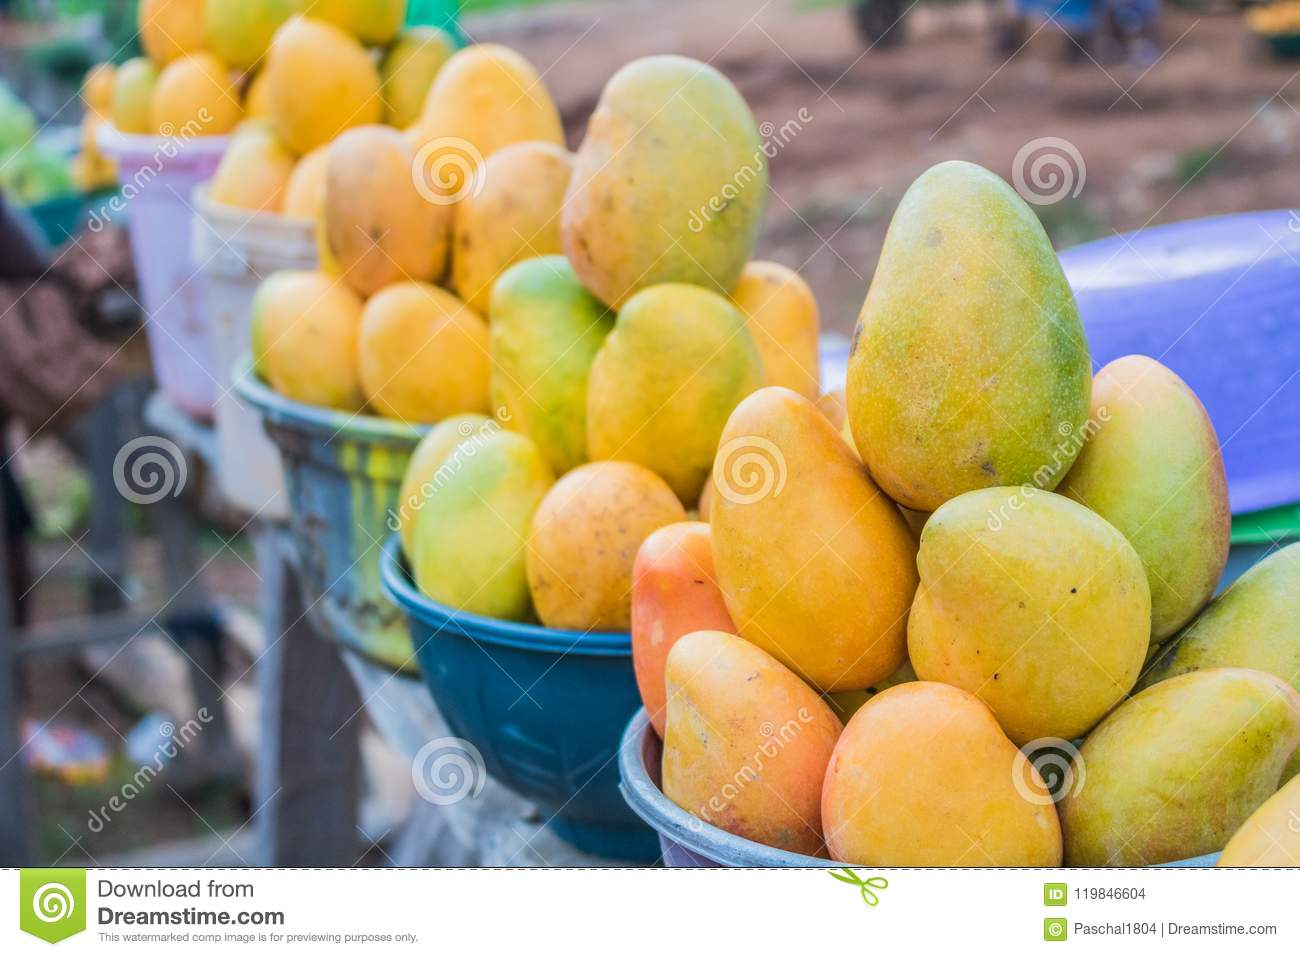 African Red Yellow And Green Mangoes 4 Stock Photo Image Of Delicious Healthy 119846604